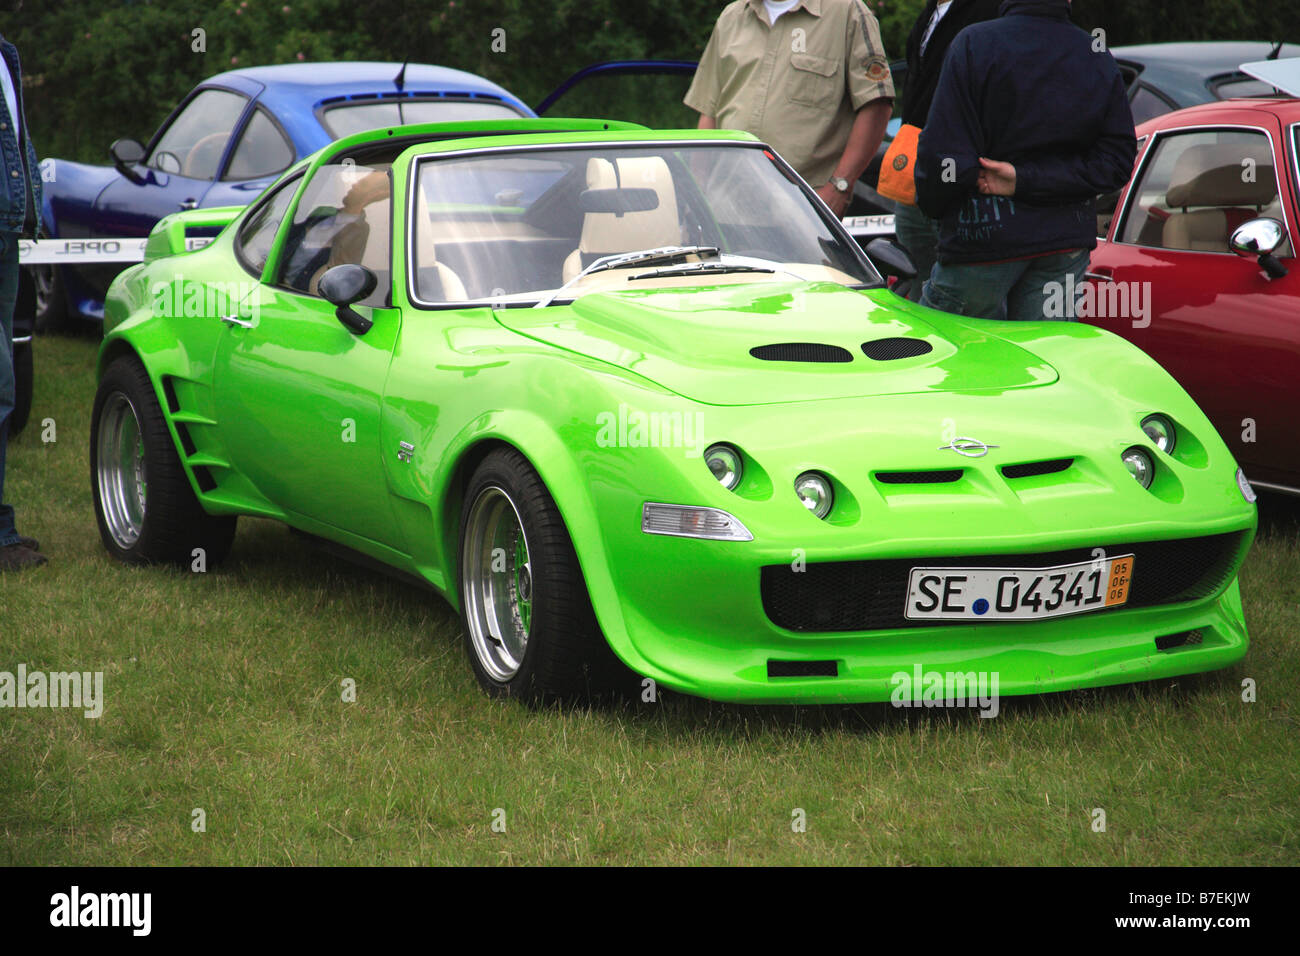 Attractive Lime Green Opel GT Classic Retro 1970 Sport Car Motor Vehicle Oldtimer  German